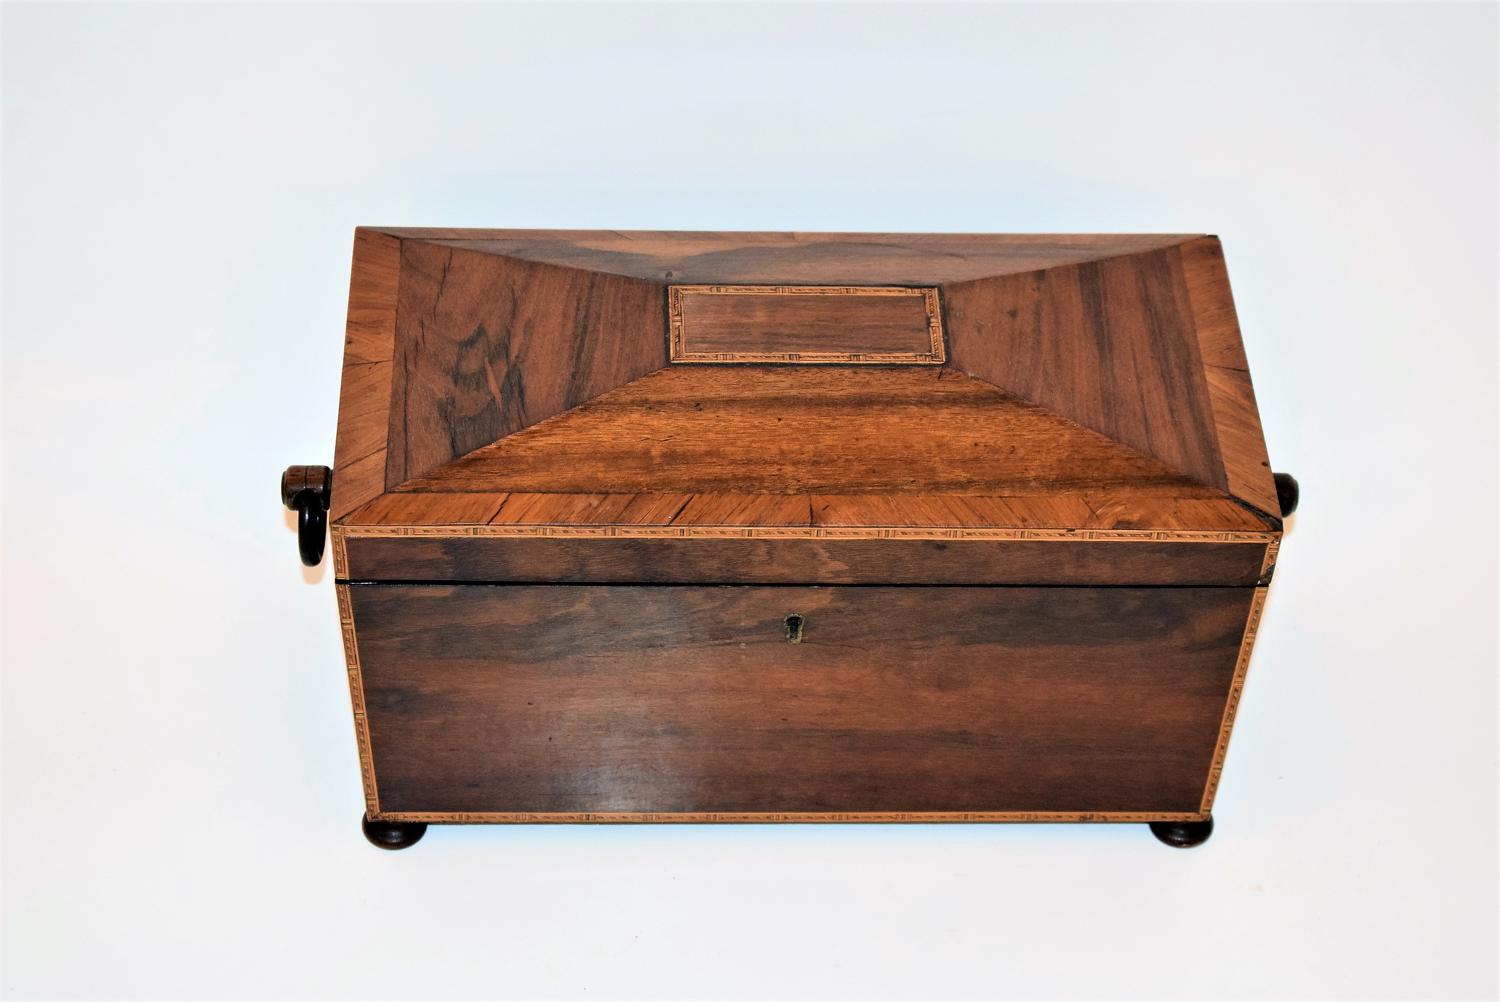 A Regency Rosewood tea caddy with fully fitted interior.